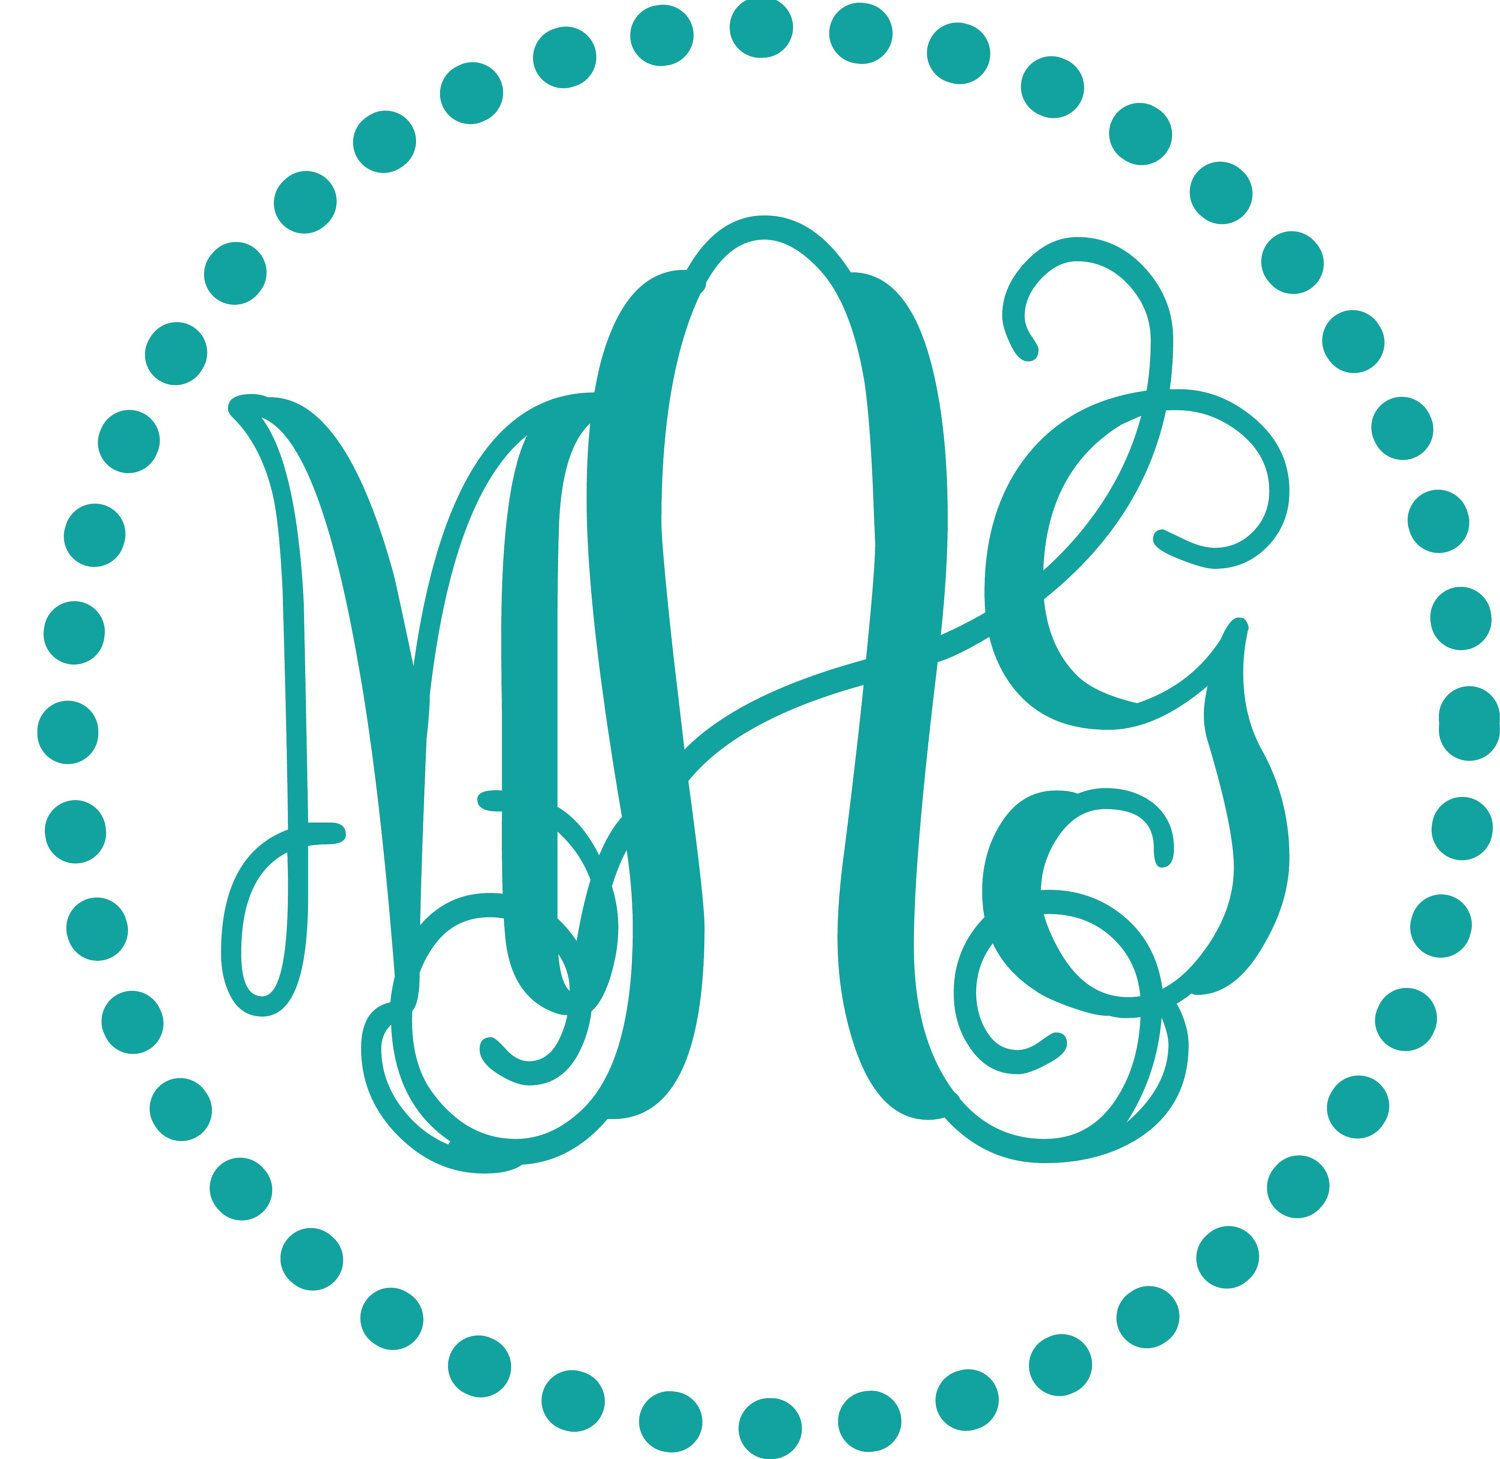 Intertwined Vine Interlocking Monogram Embroidery Font, Description - Monogram Maker Online Free Printable